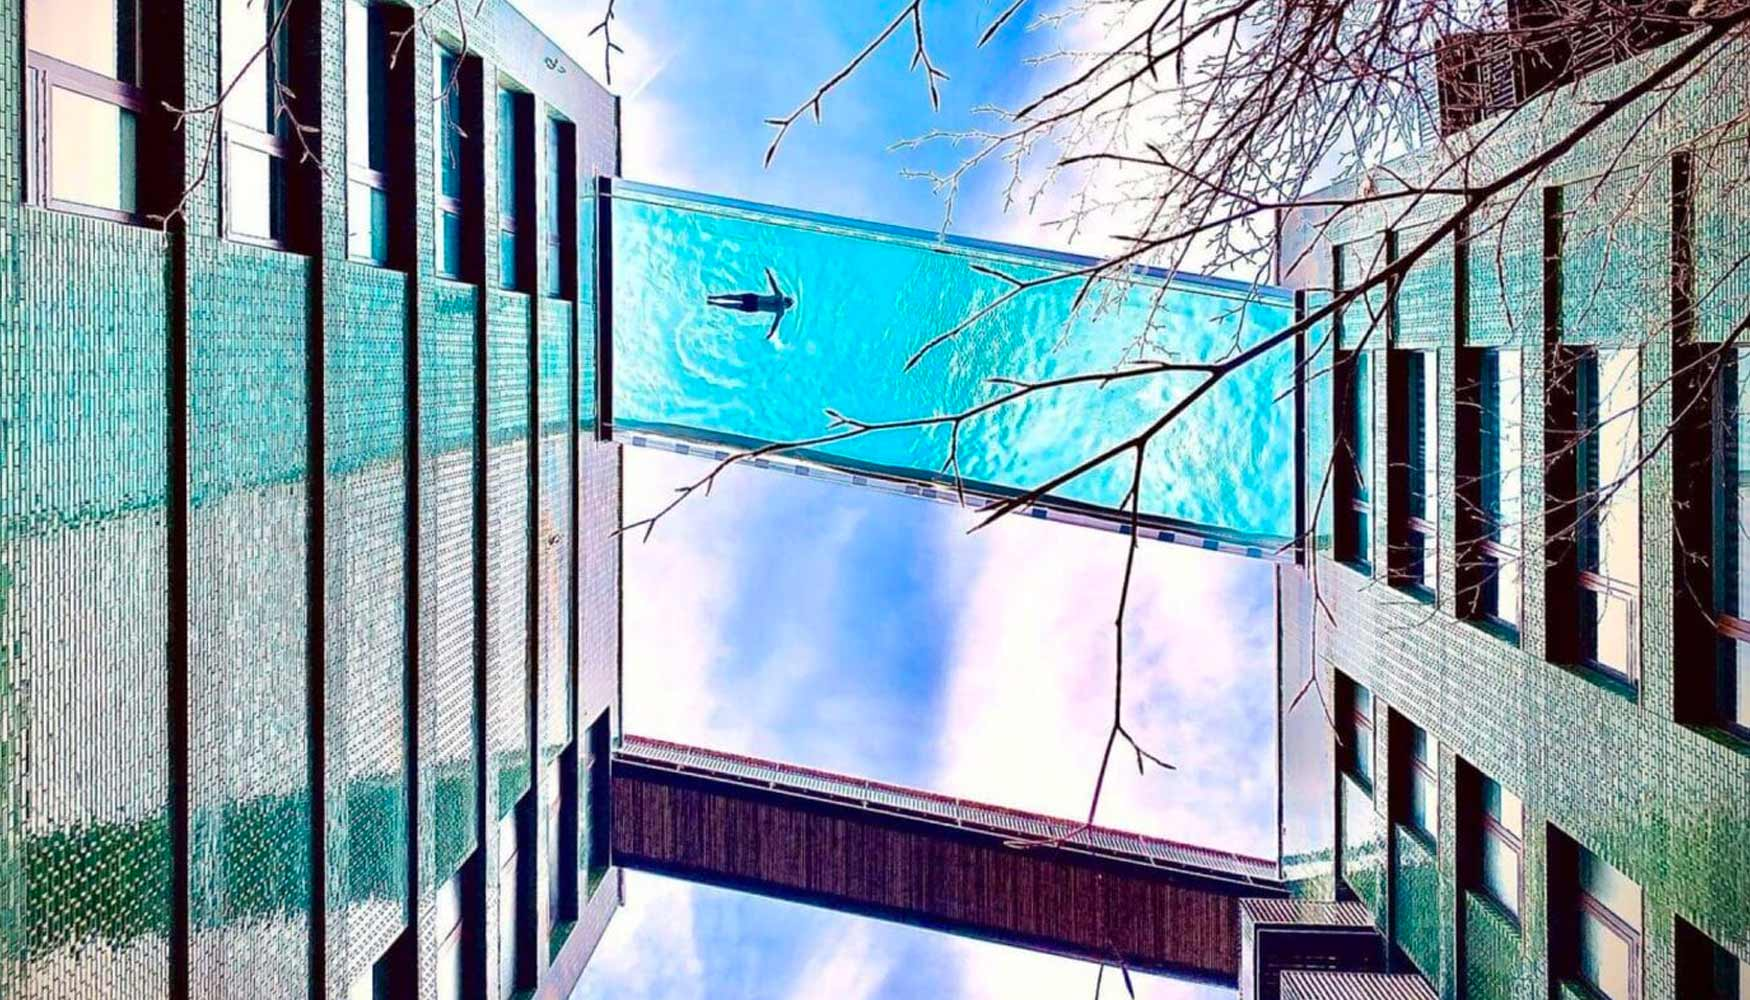 The world's first sky pool will be suspended 35m in the air between two apartment buildings at the Embassy Gardens in London.